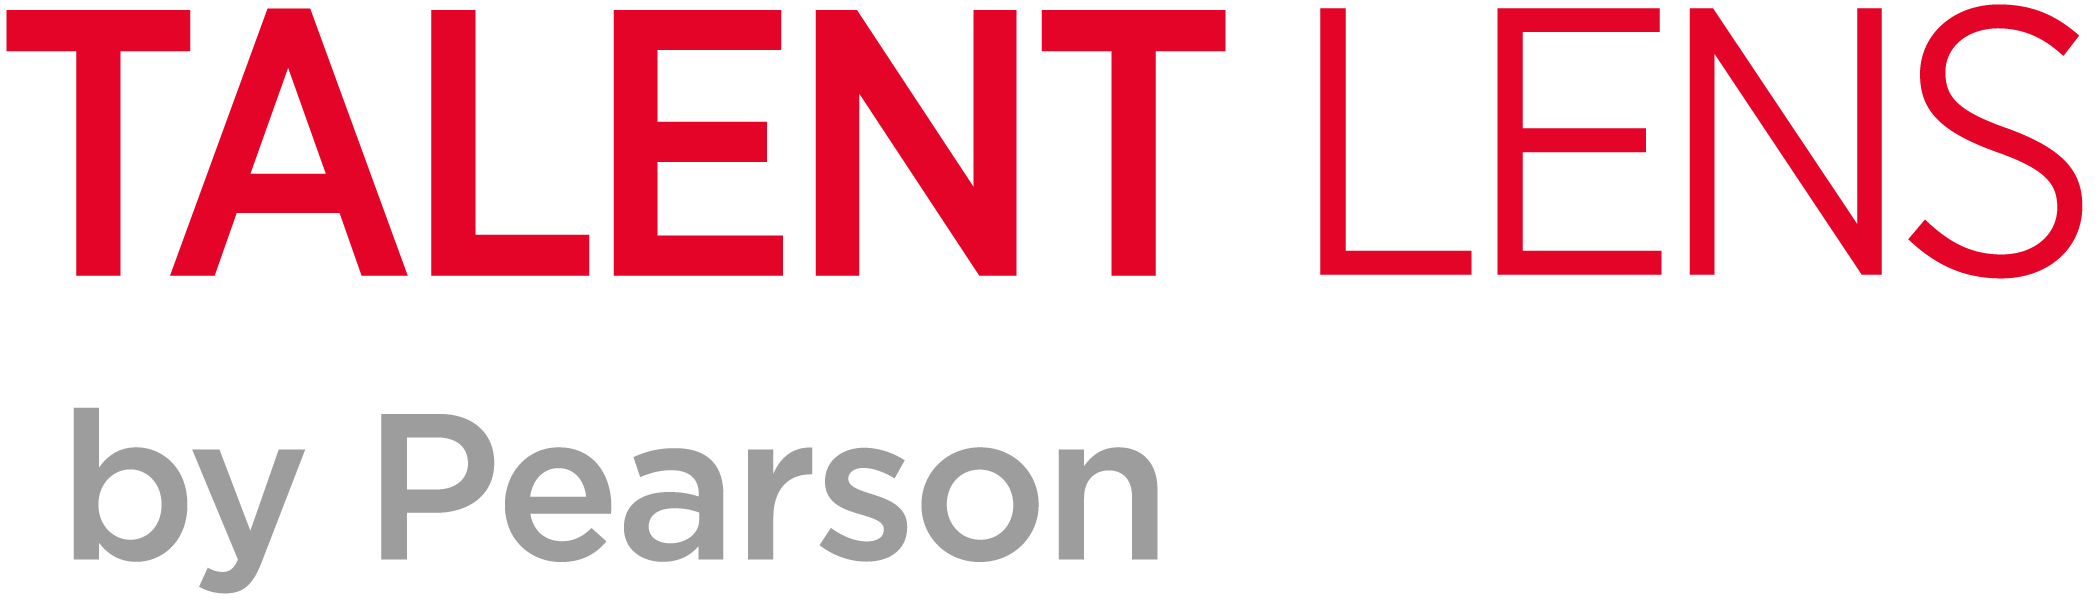 Talent Lens by Pearson